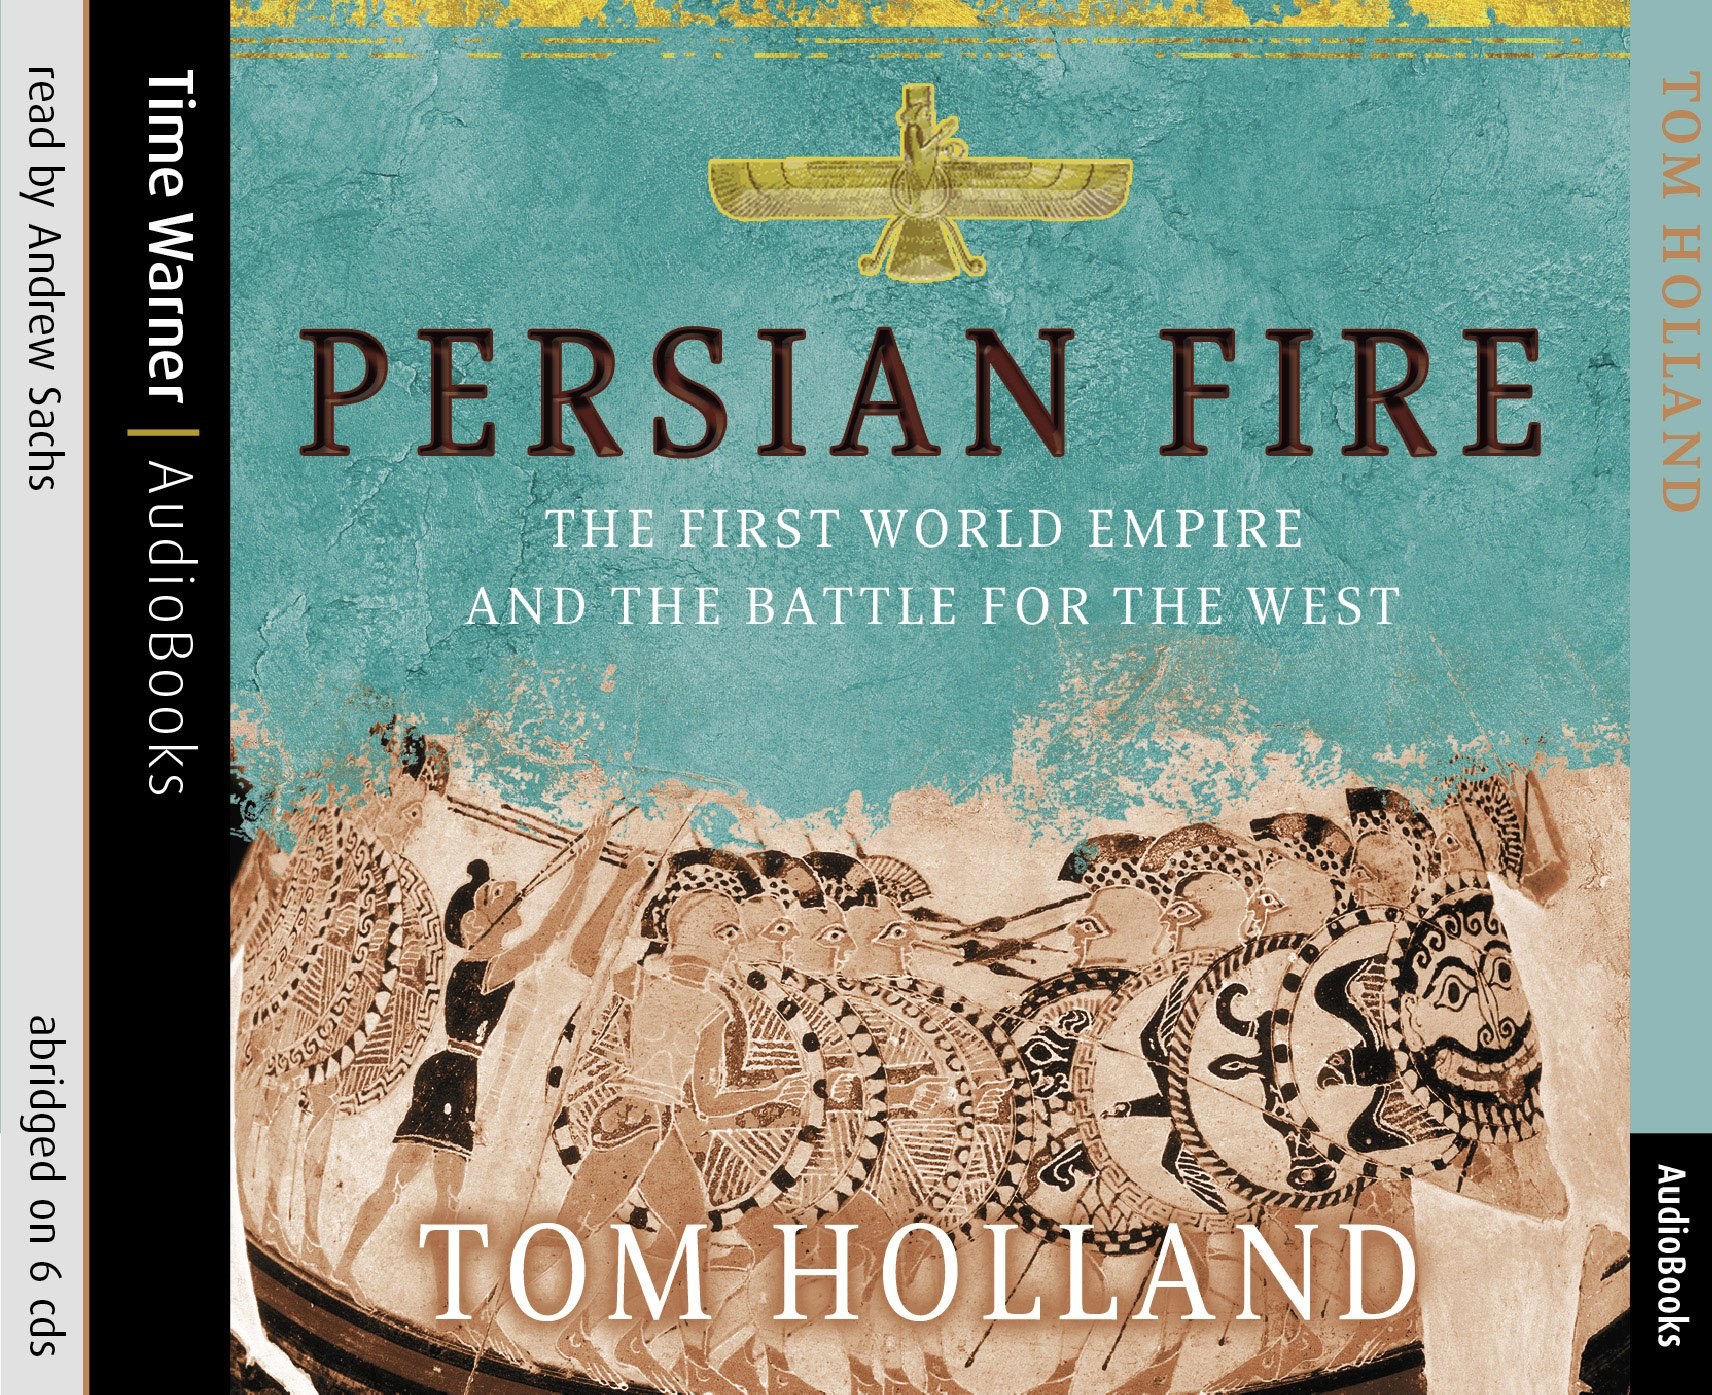 The First World Empire and the Battle for the West [Abridged] - Tom Holland